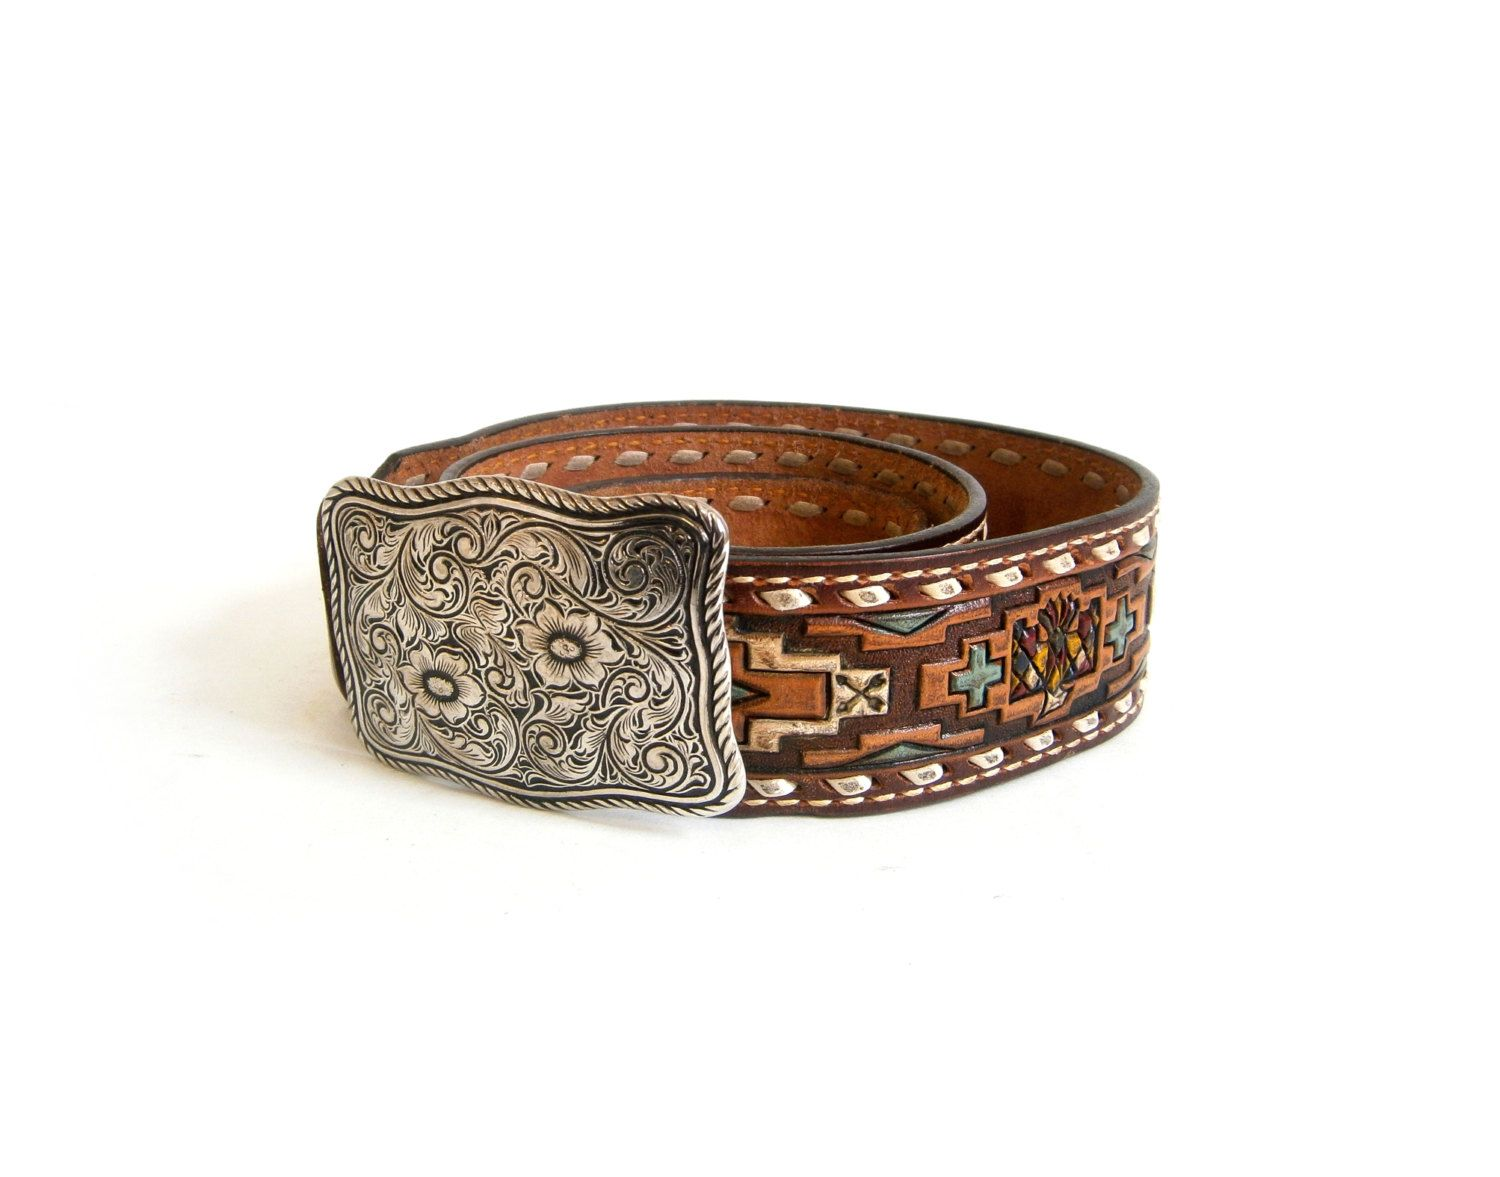 Tony Lama Hand Tooled Leather Belt With Buckle Mens Southwestern Vintage  Size 36